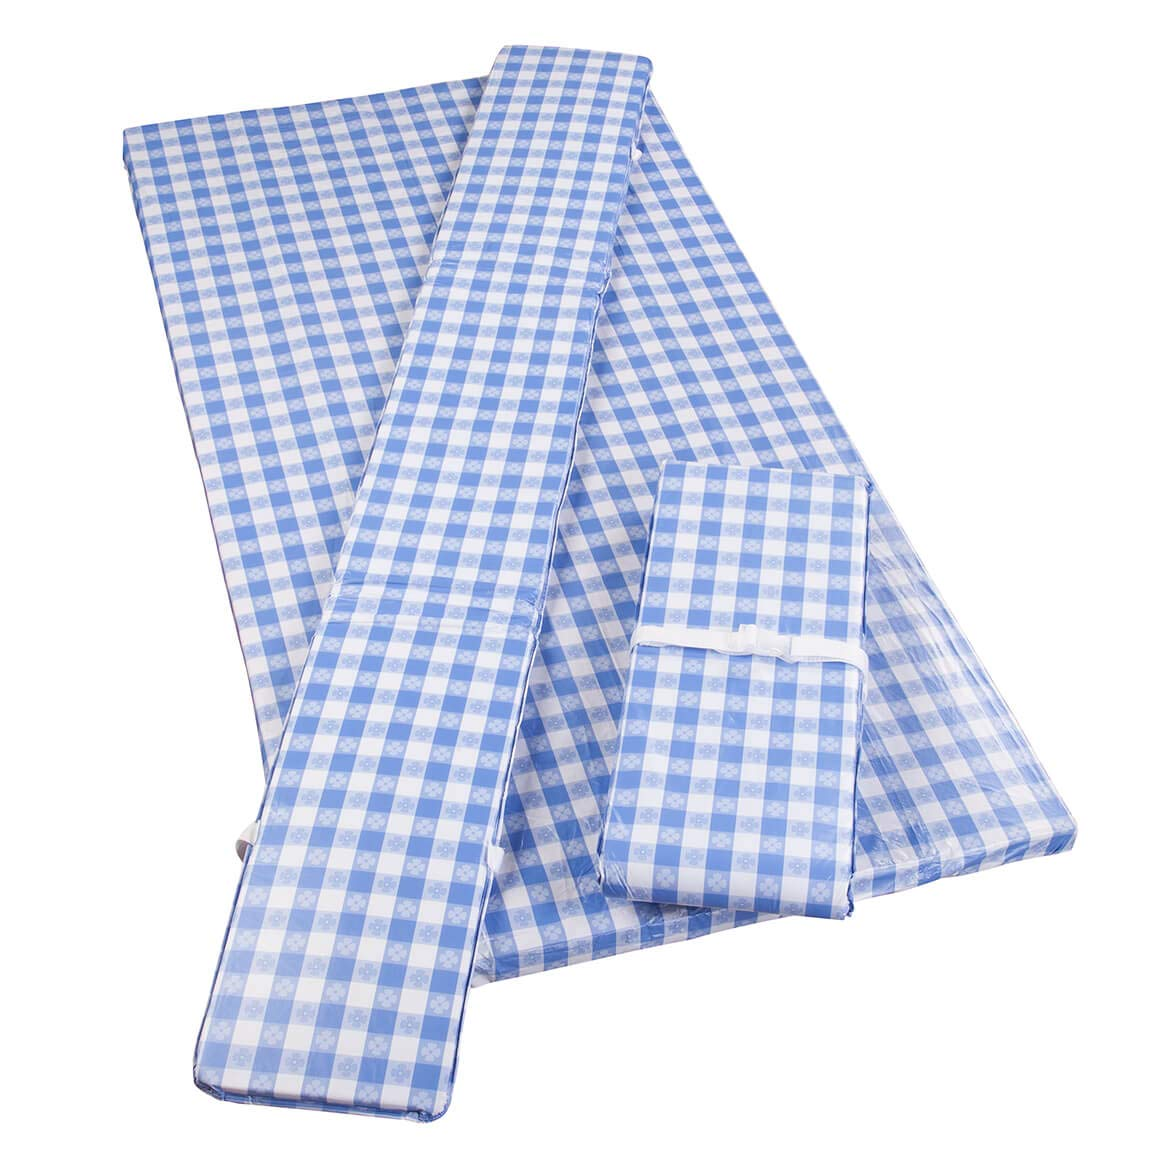 Fox Valley Traders Deluxe Picnic Table Cover w/Cushions by HSK Cornflower Blue